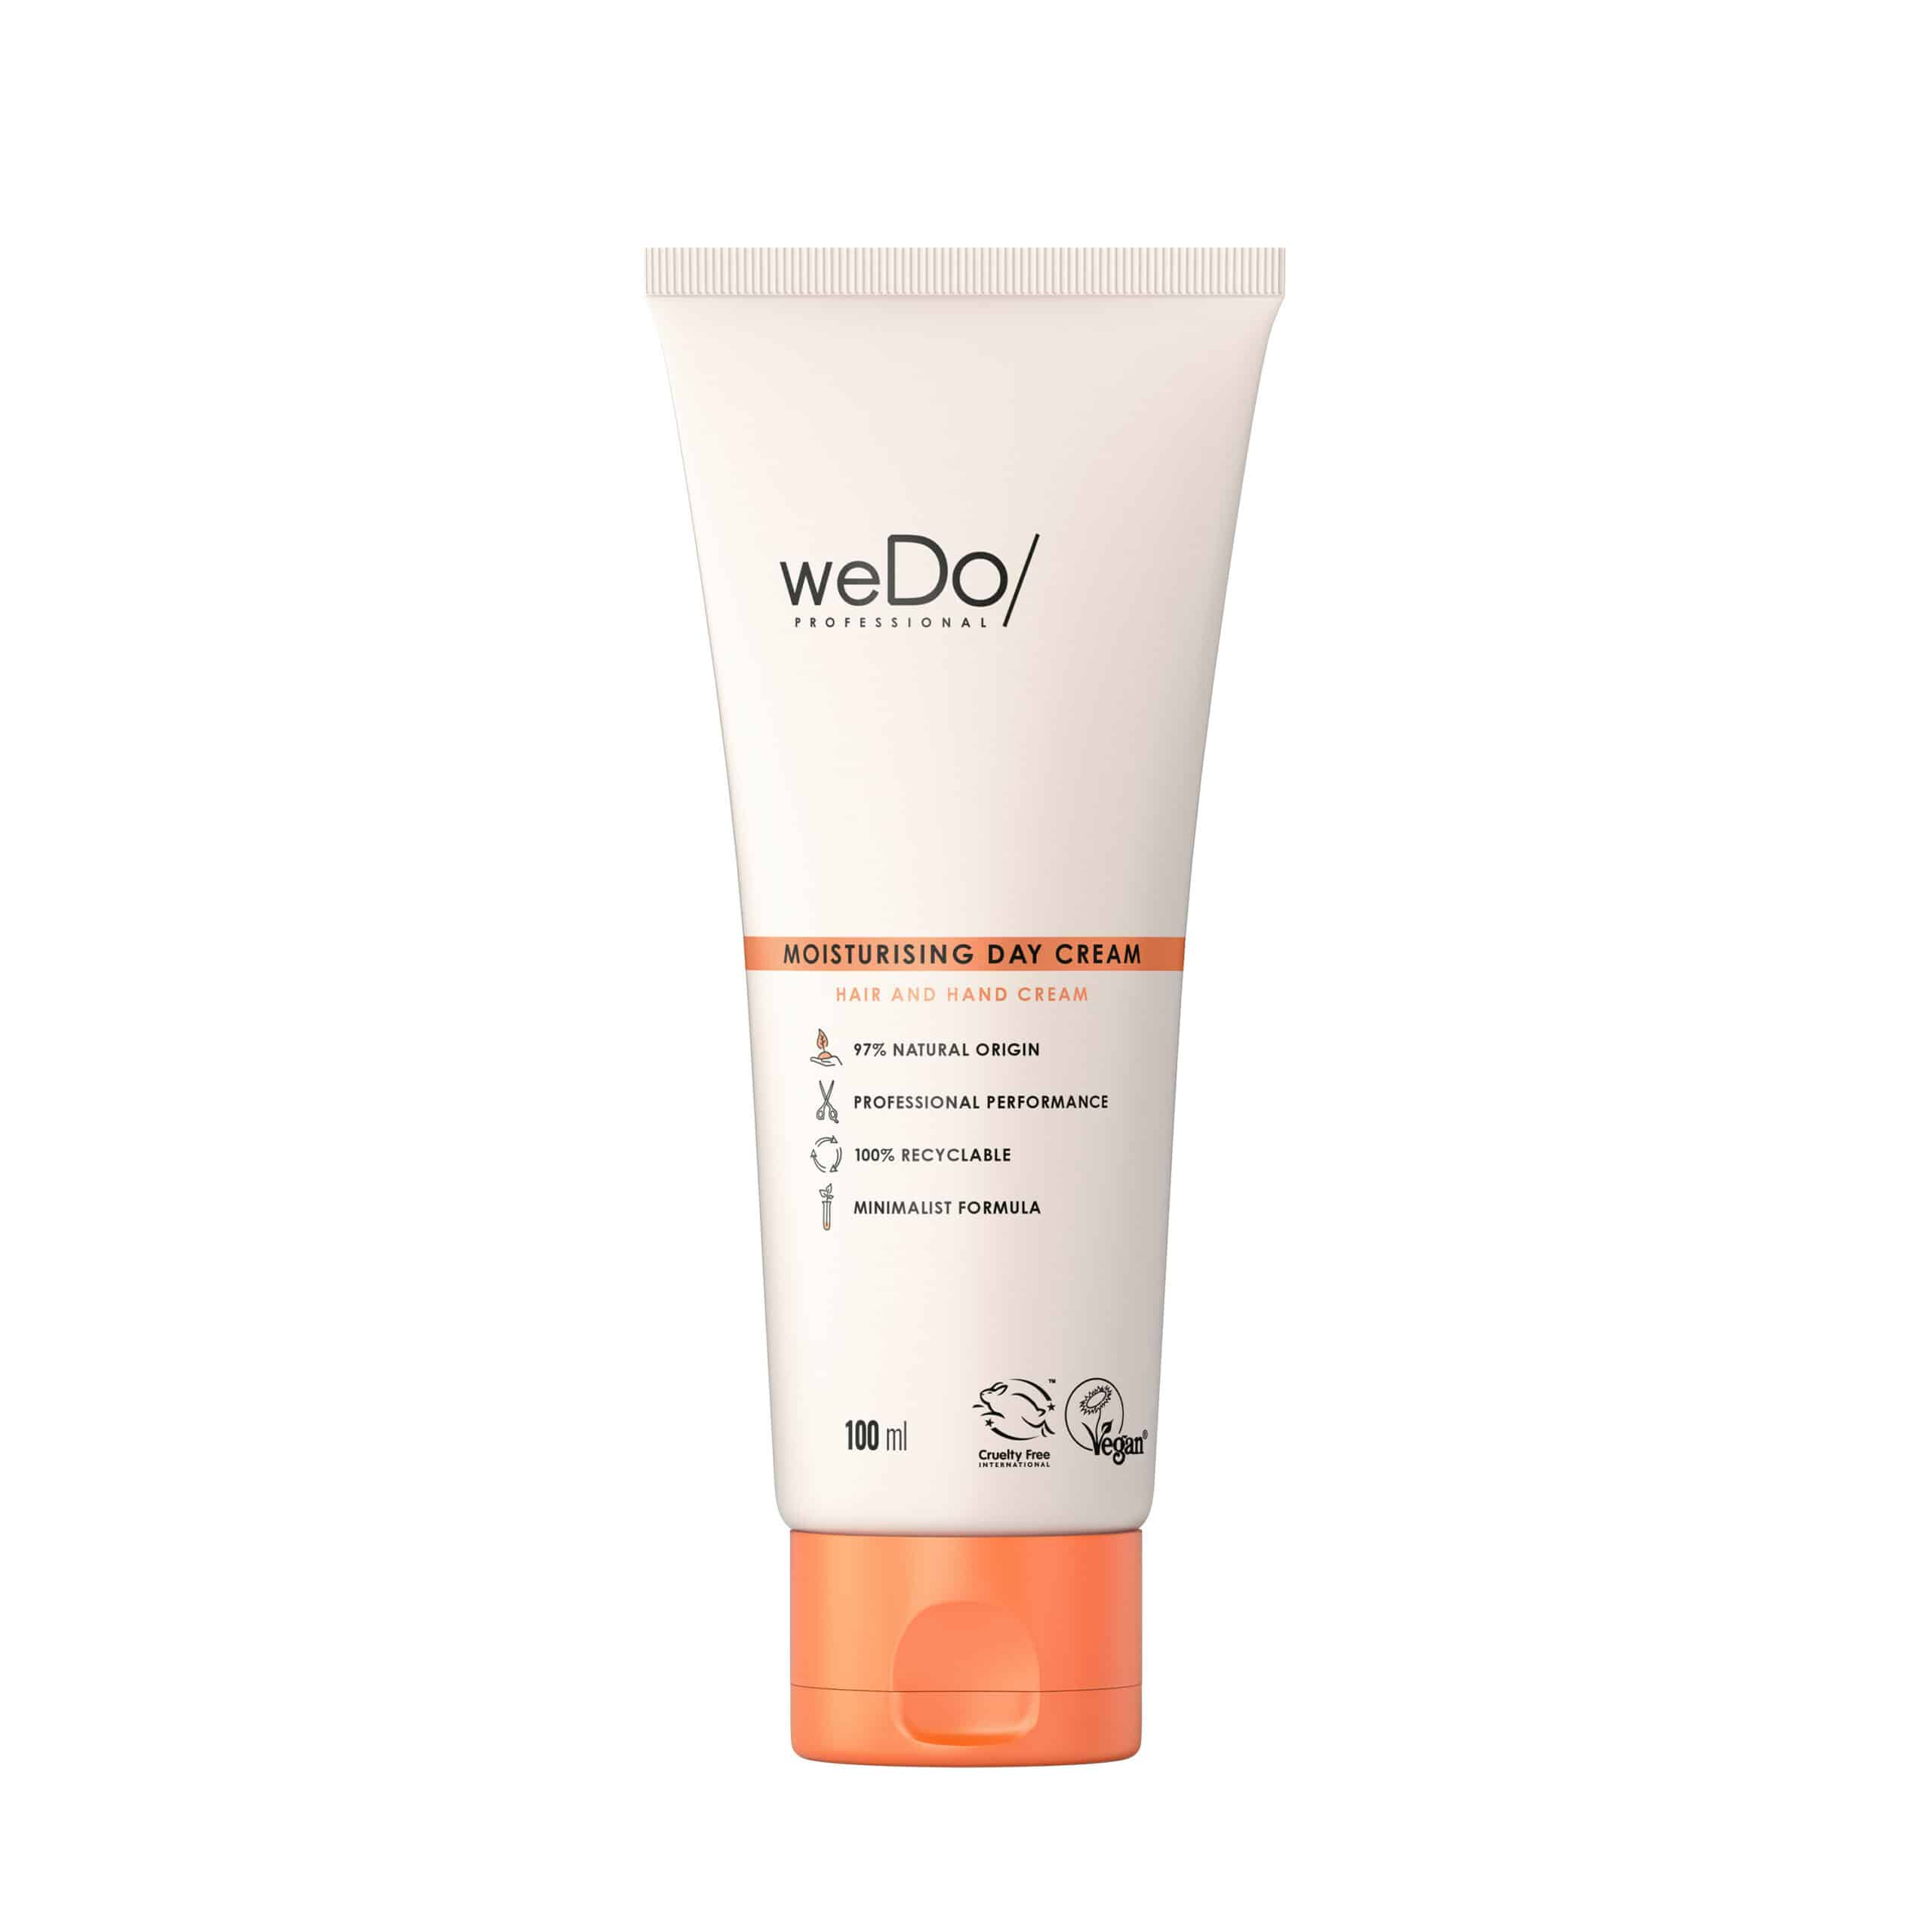 JPG_HighRes-Wedo_Moisturizing-Day-Cream_100ml_3614229705232_8036-scaled